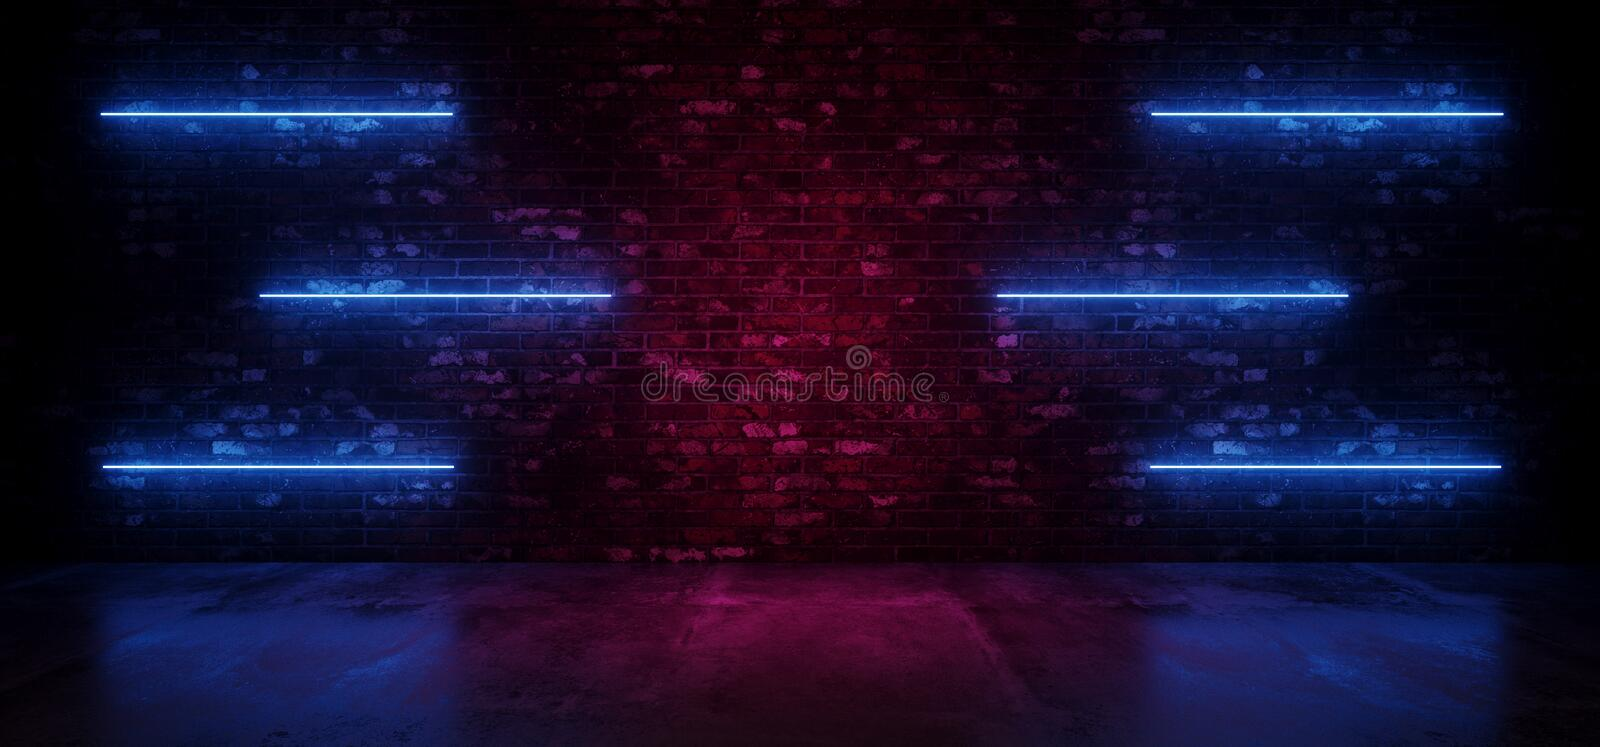 Retro Neon Sci Fi Modern Futuristic Neon Glowing Blue Line Lights On Grunge Brick Purple Glowing Wall Concrete Reflection Floor. Dark Room Empty .3D Rendering royalty free illustration